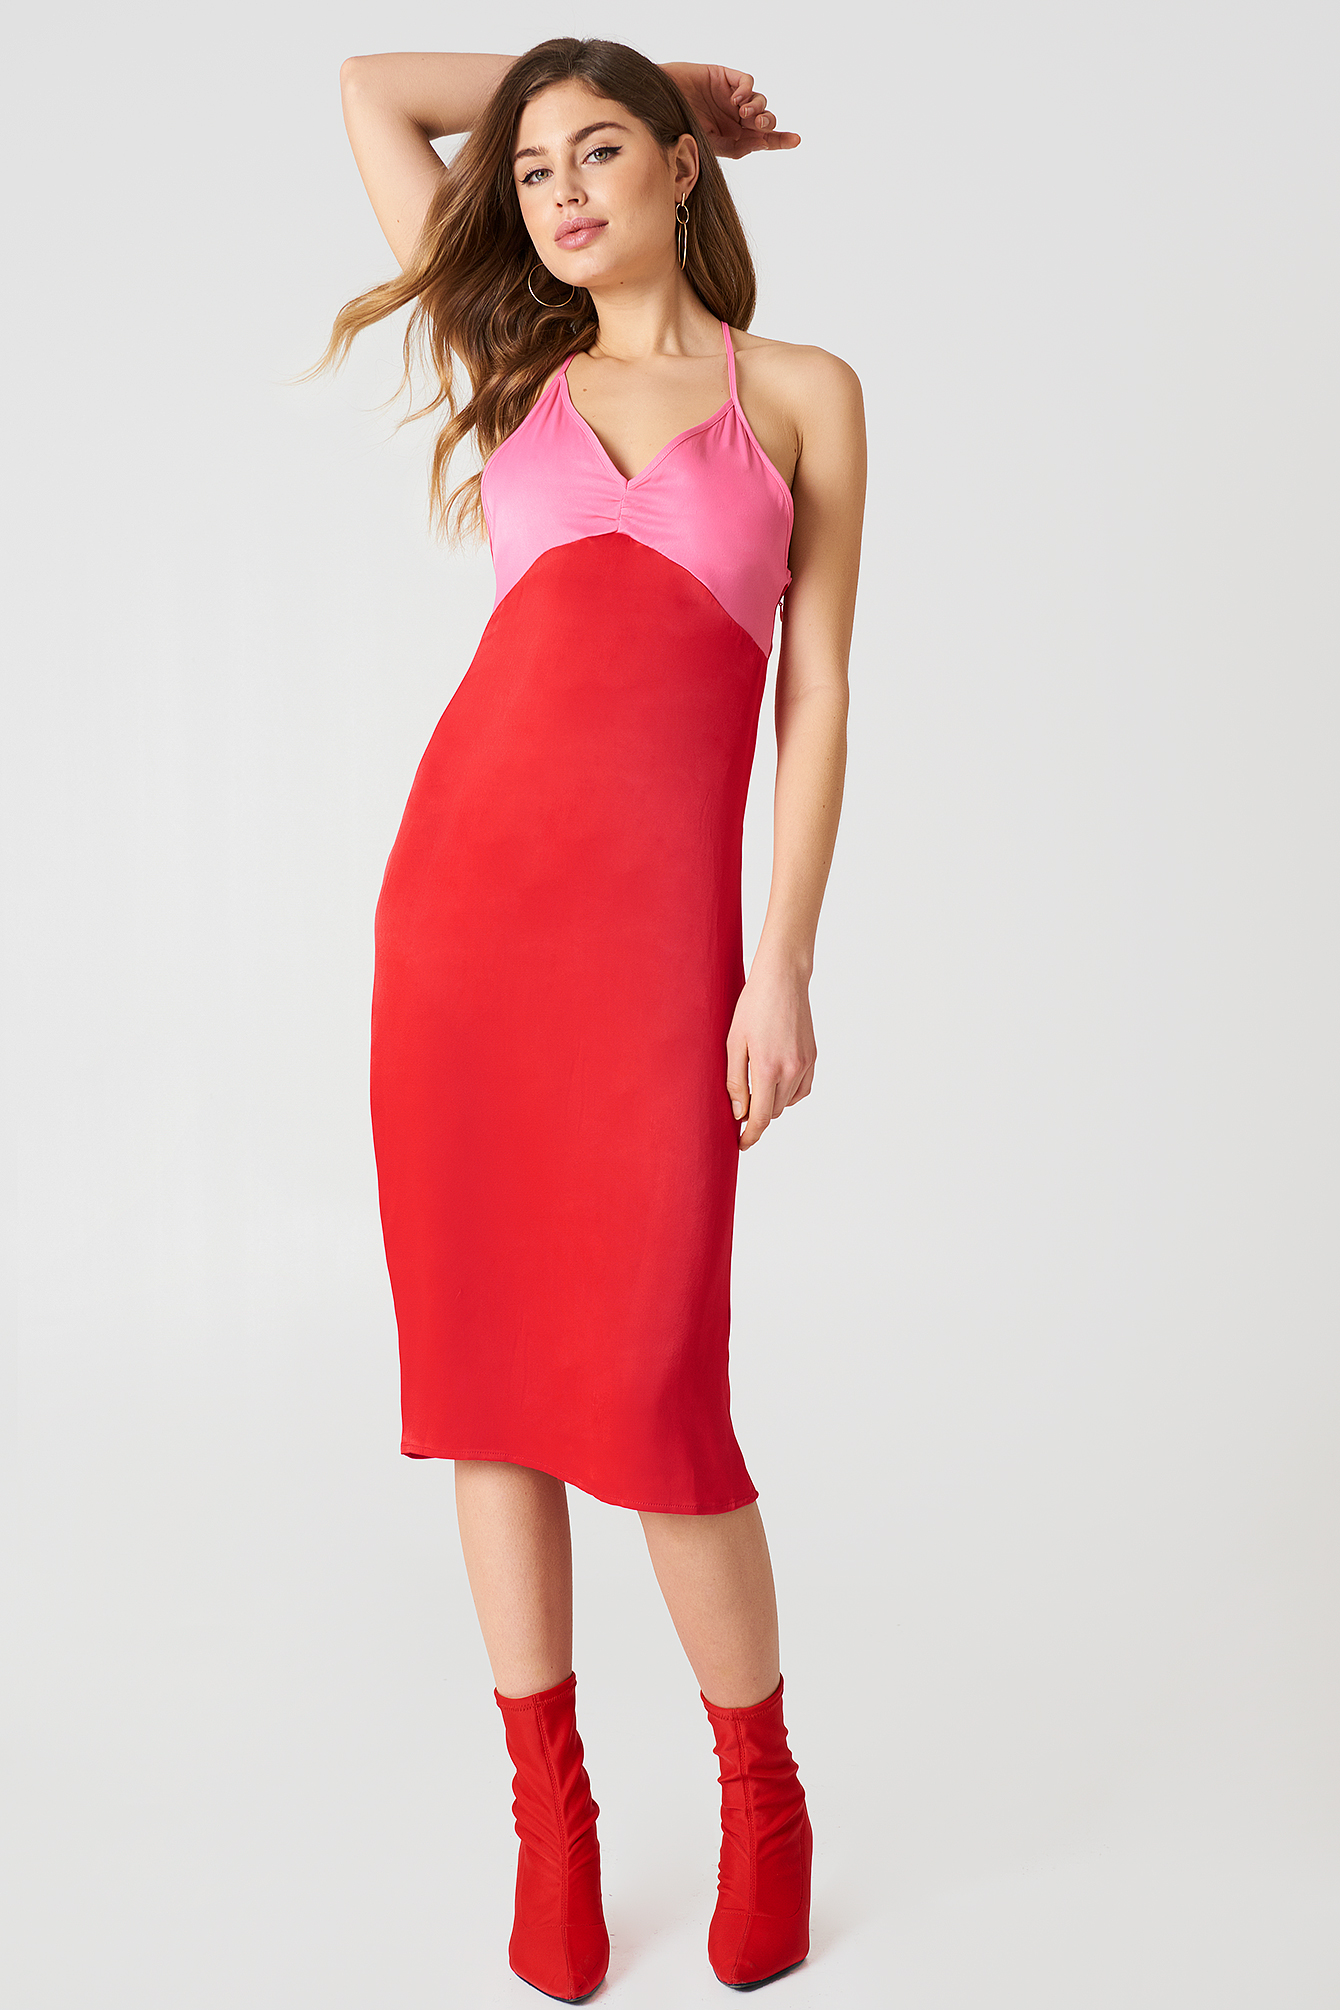 Red/Pink Block Colored Slip Dress